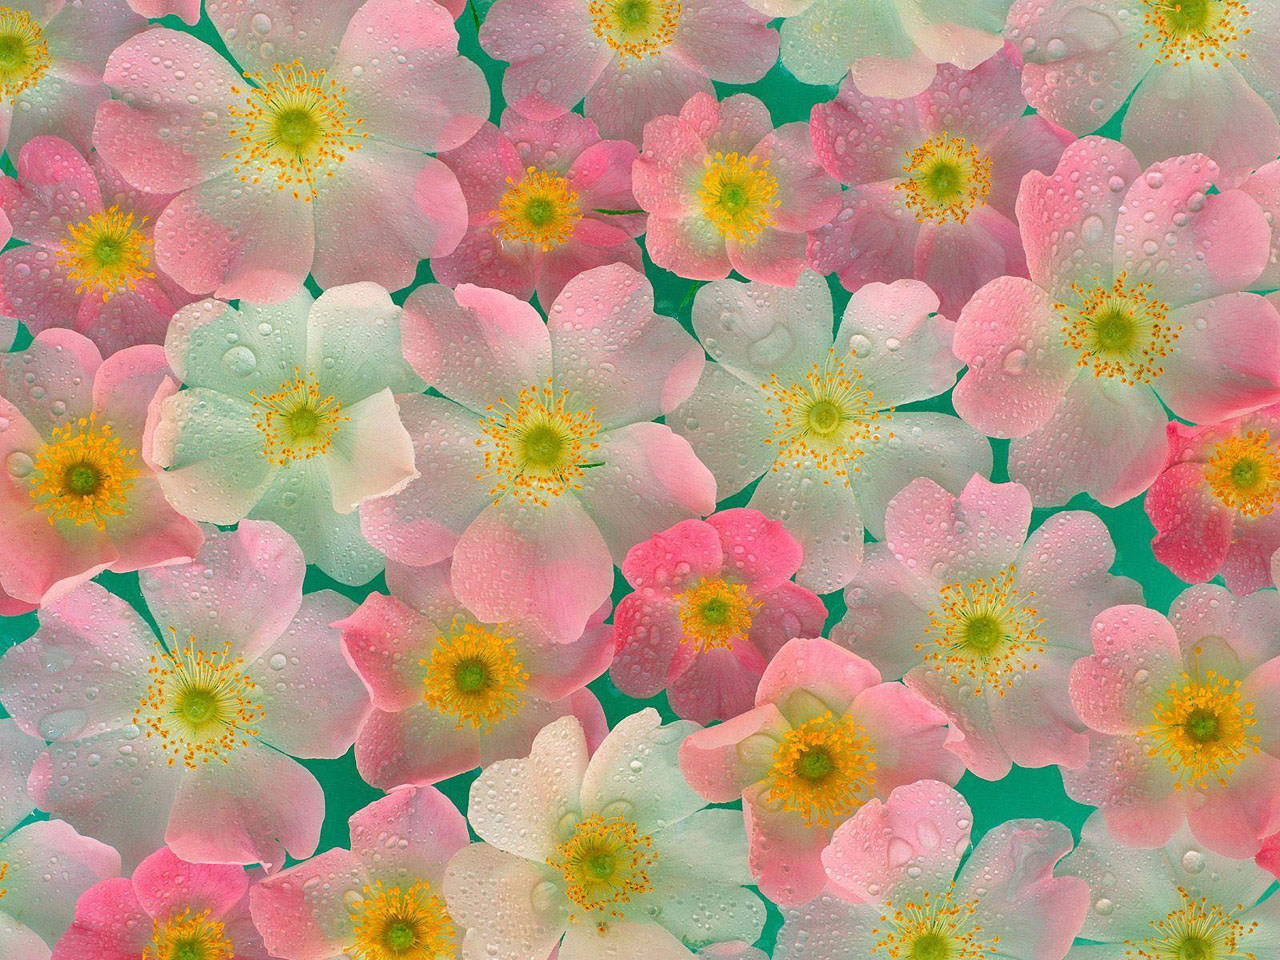 Flower Drawings How To Draw Flowers likewise Puten also Lsd Spongebob likewise Japanese Peony further Flowers Gallery Full. on realistic drawings of flowers